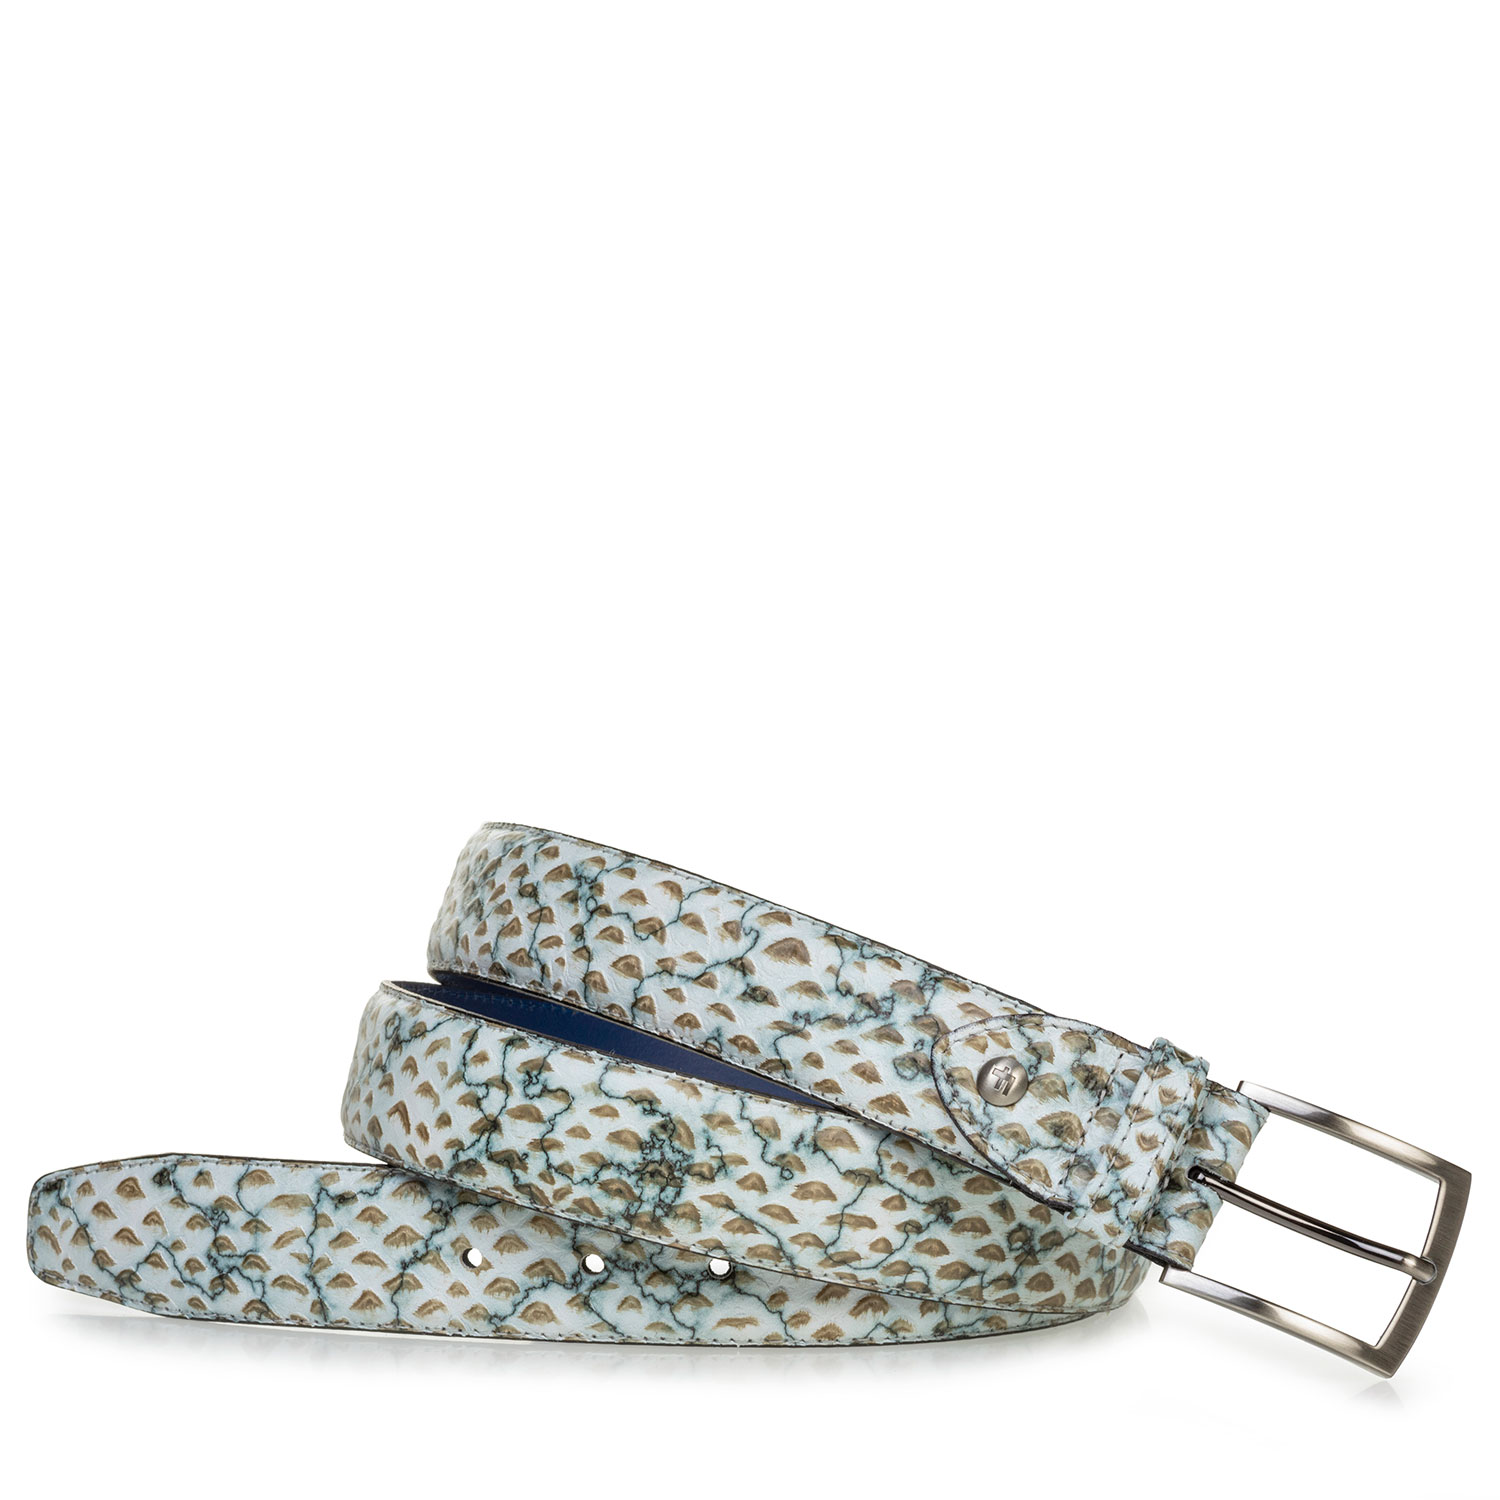 75203/95 - Belt printed leather sand-coloured